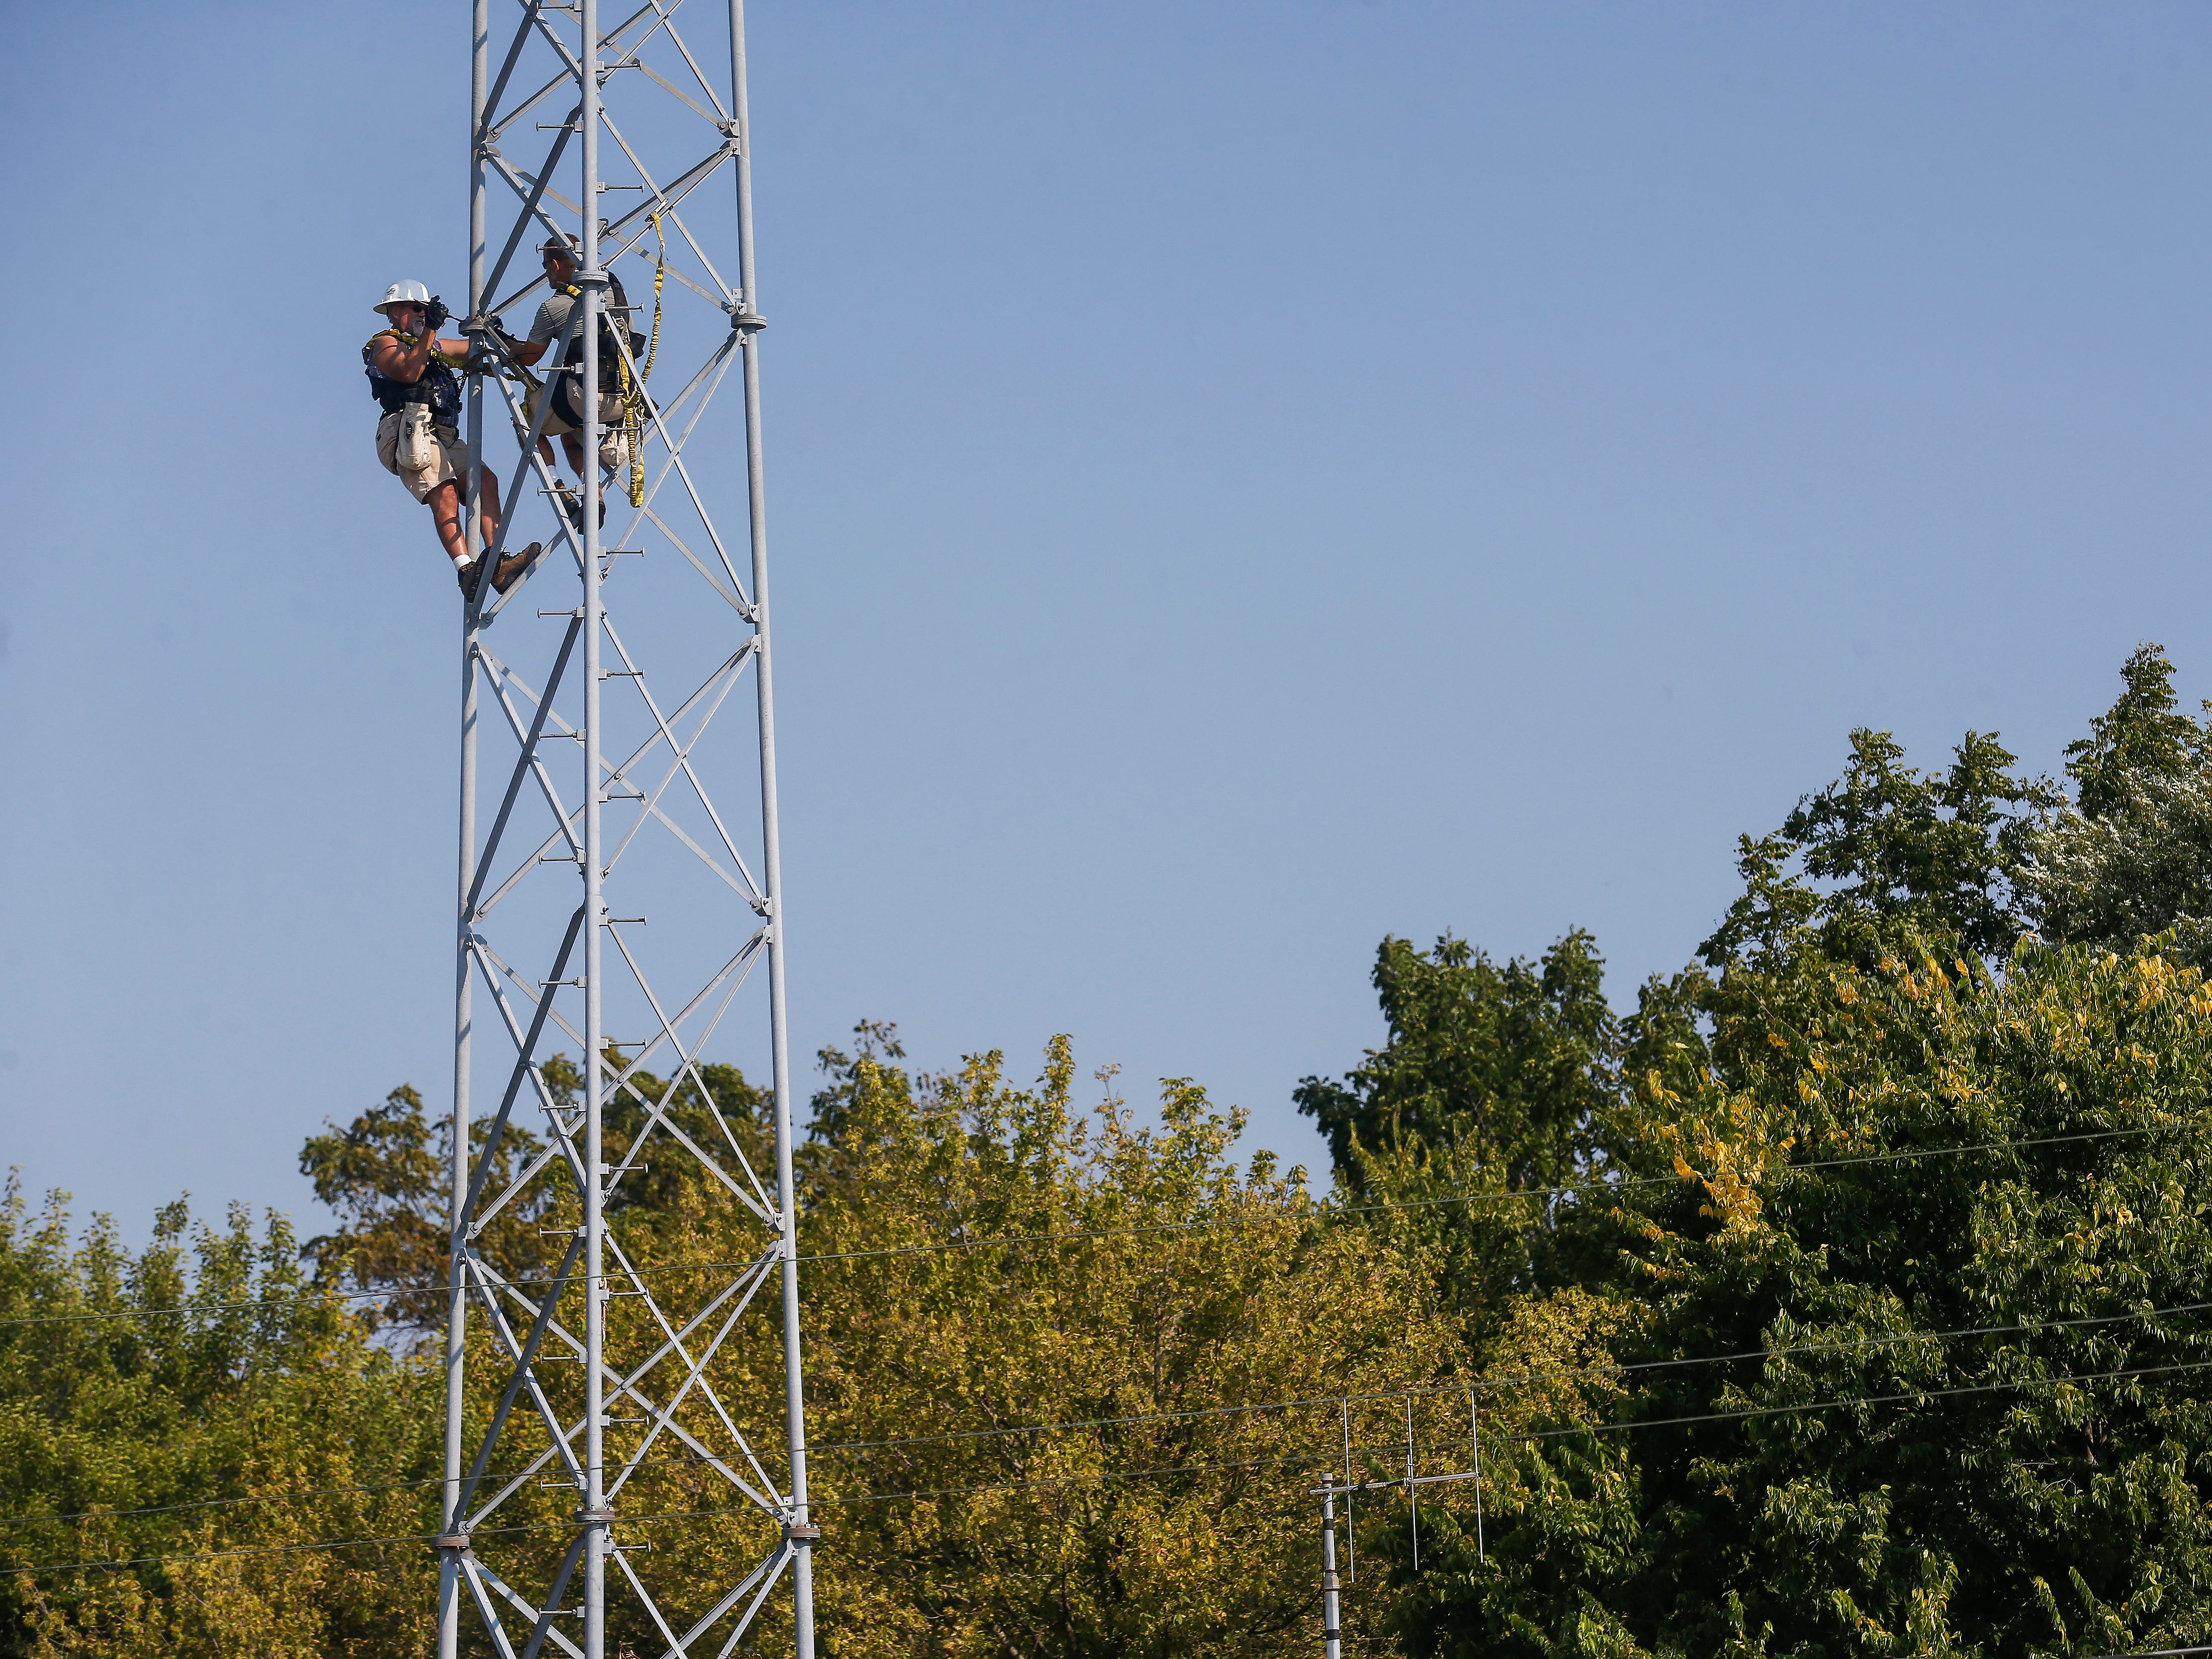 Craig House, right, and Tim Sloan, both of DIY Broadband, disassemble an old pager tower on Thursday, Sep. 20, 2018. The tower was located on property just purchased by Arnie's Plumbing, Heating and Air Services near the intersection of Chase Street and Lyon Avenue.